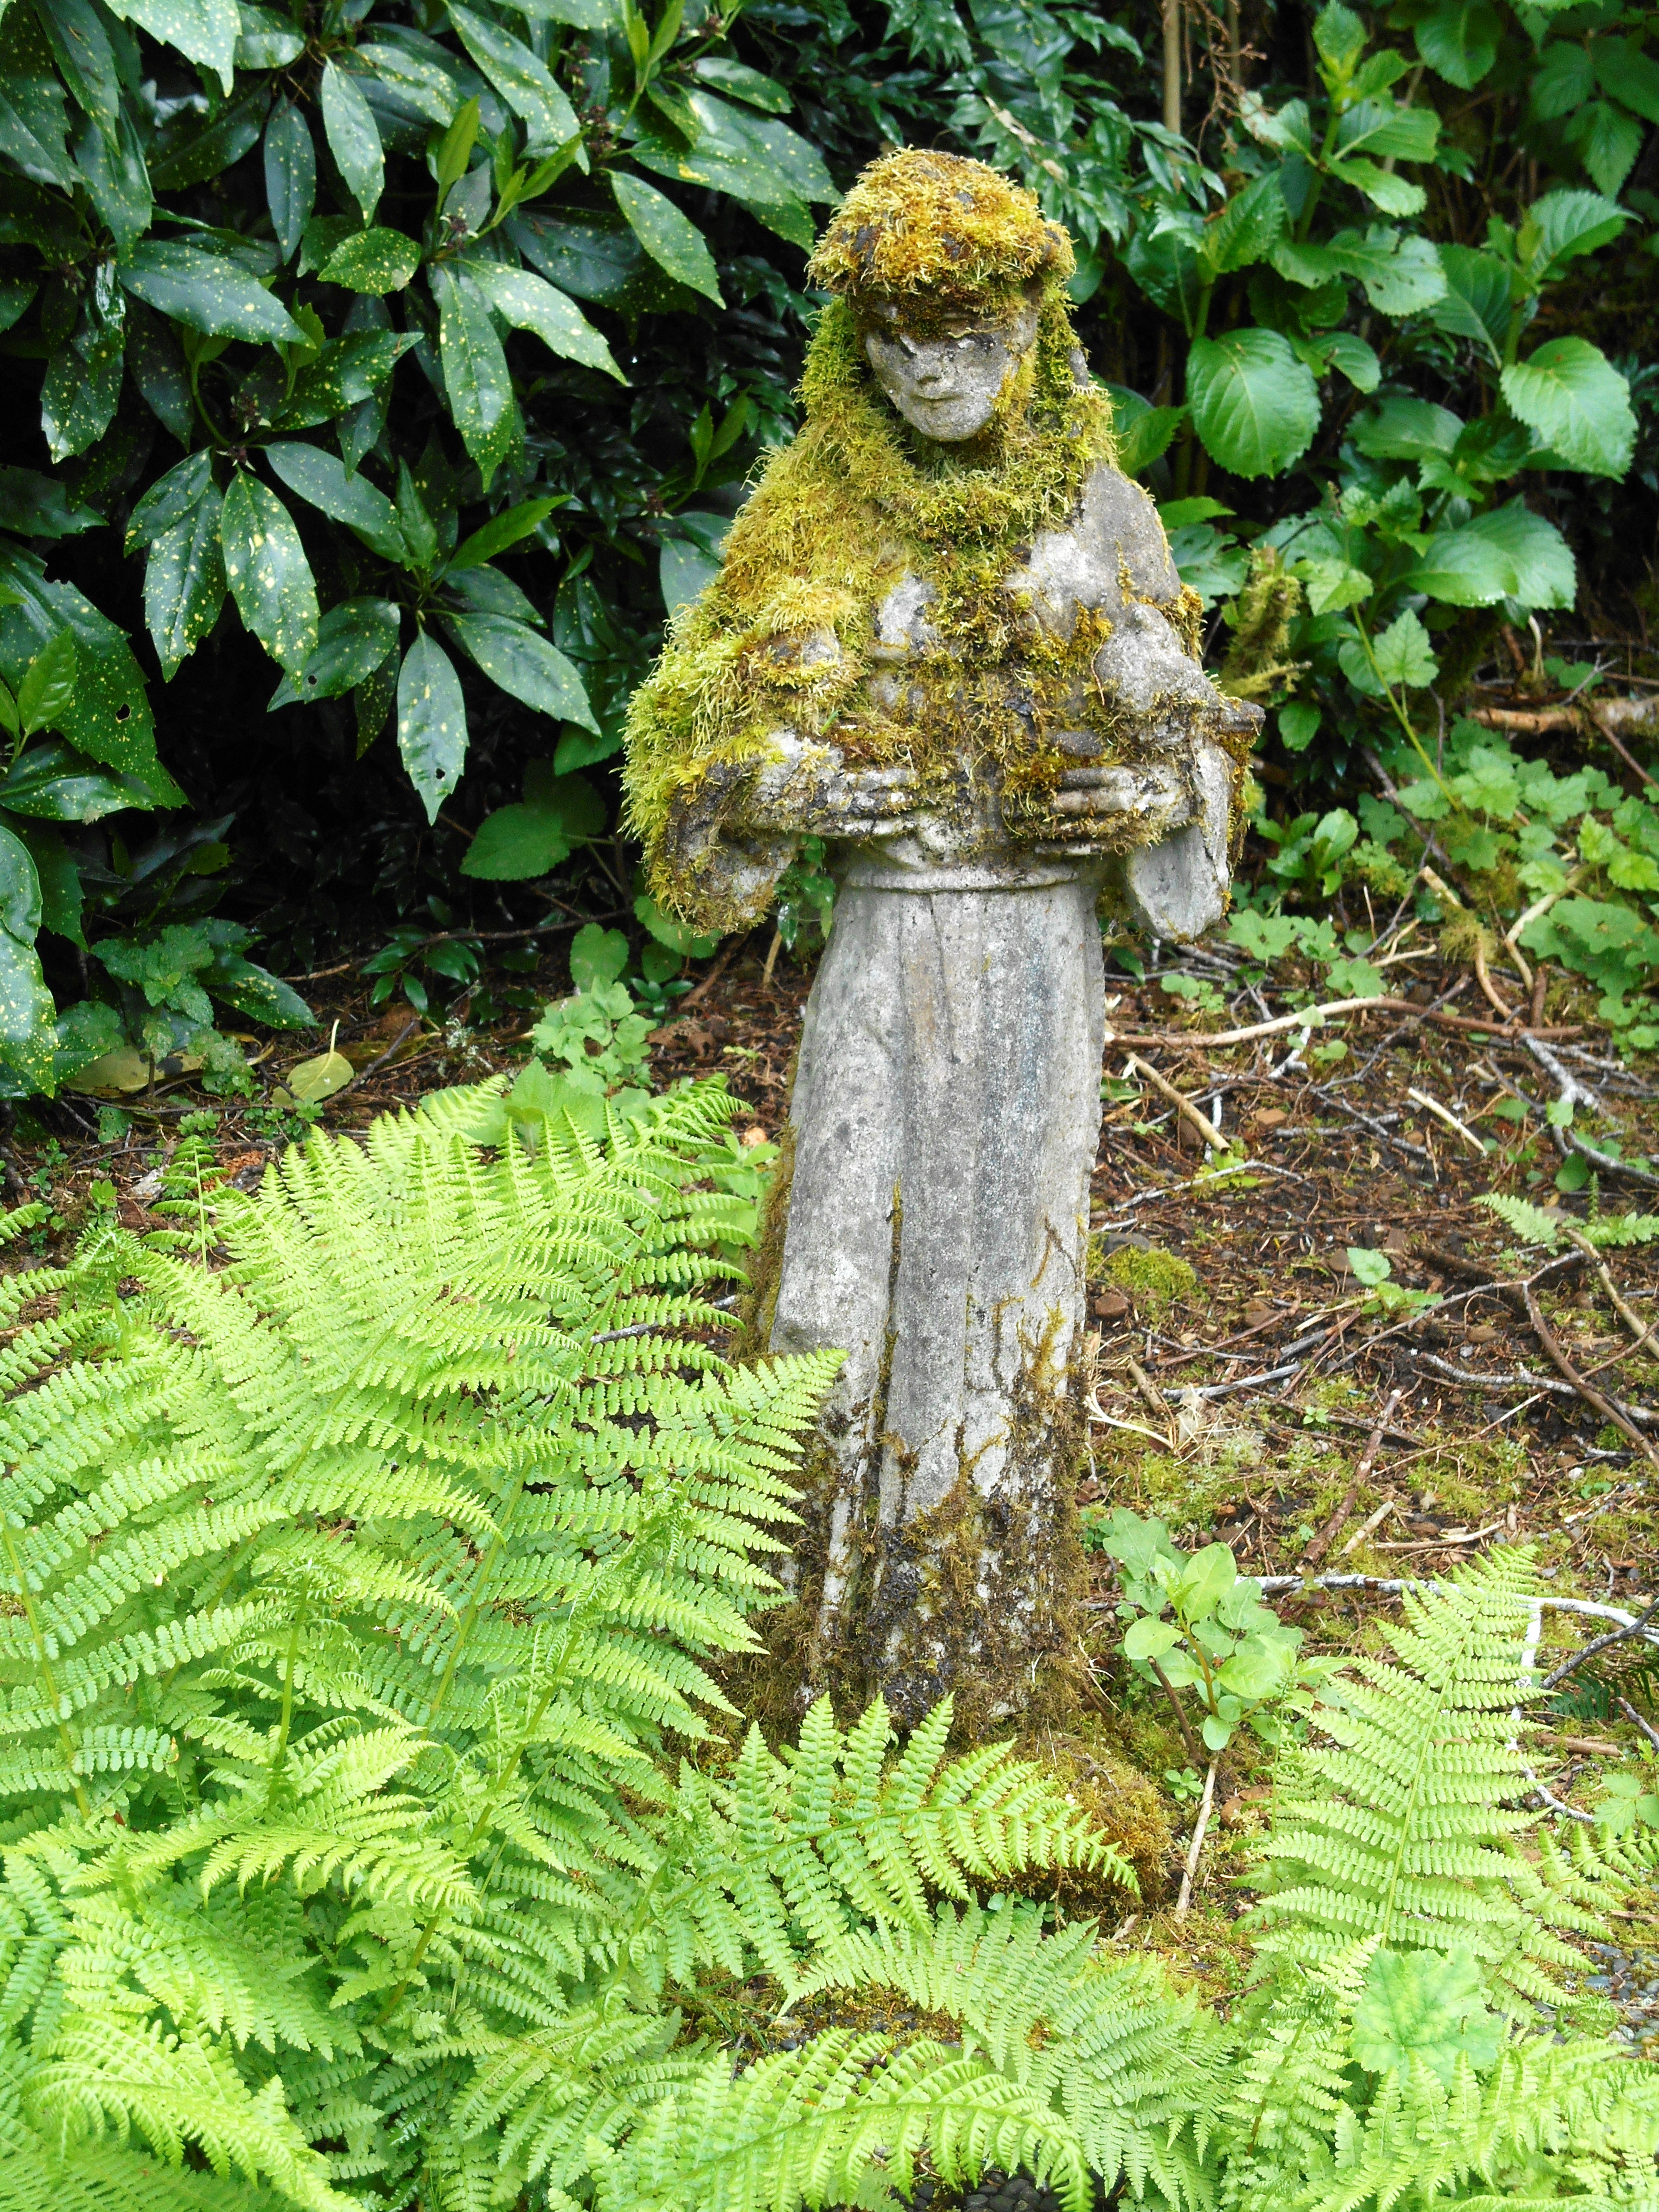 The Mossy Creek Pottery Garden